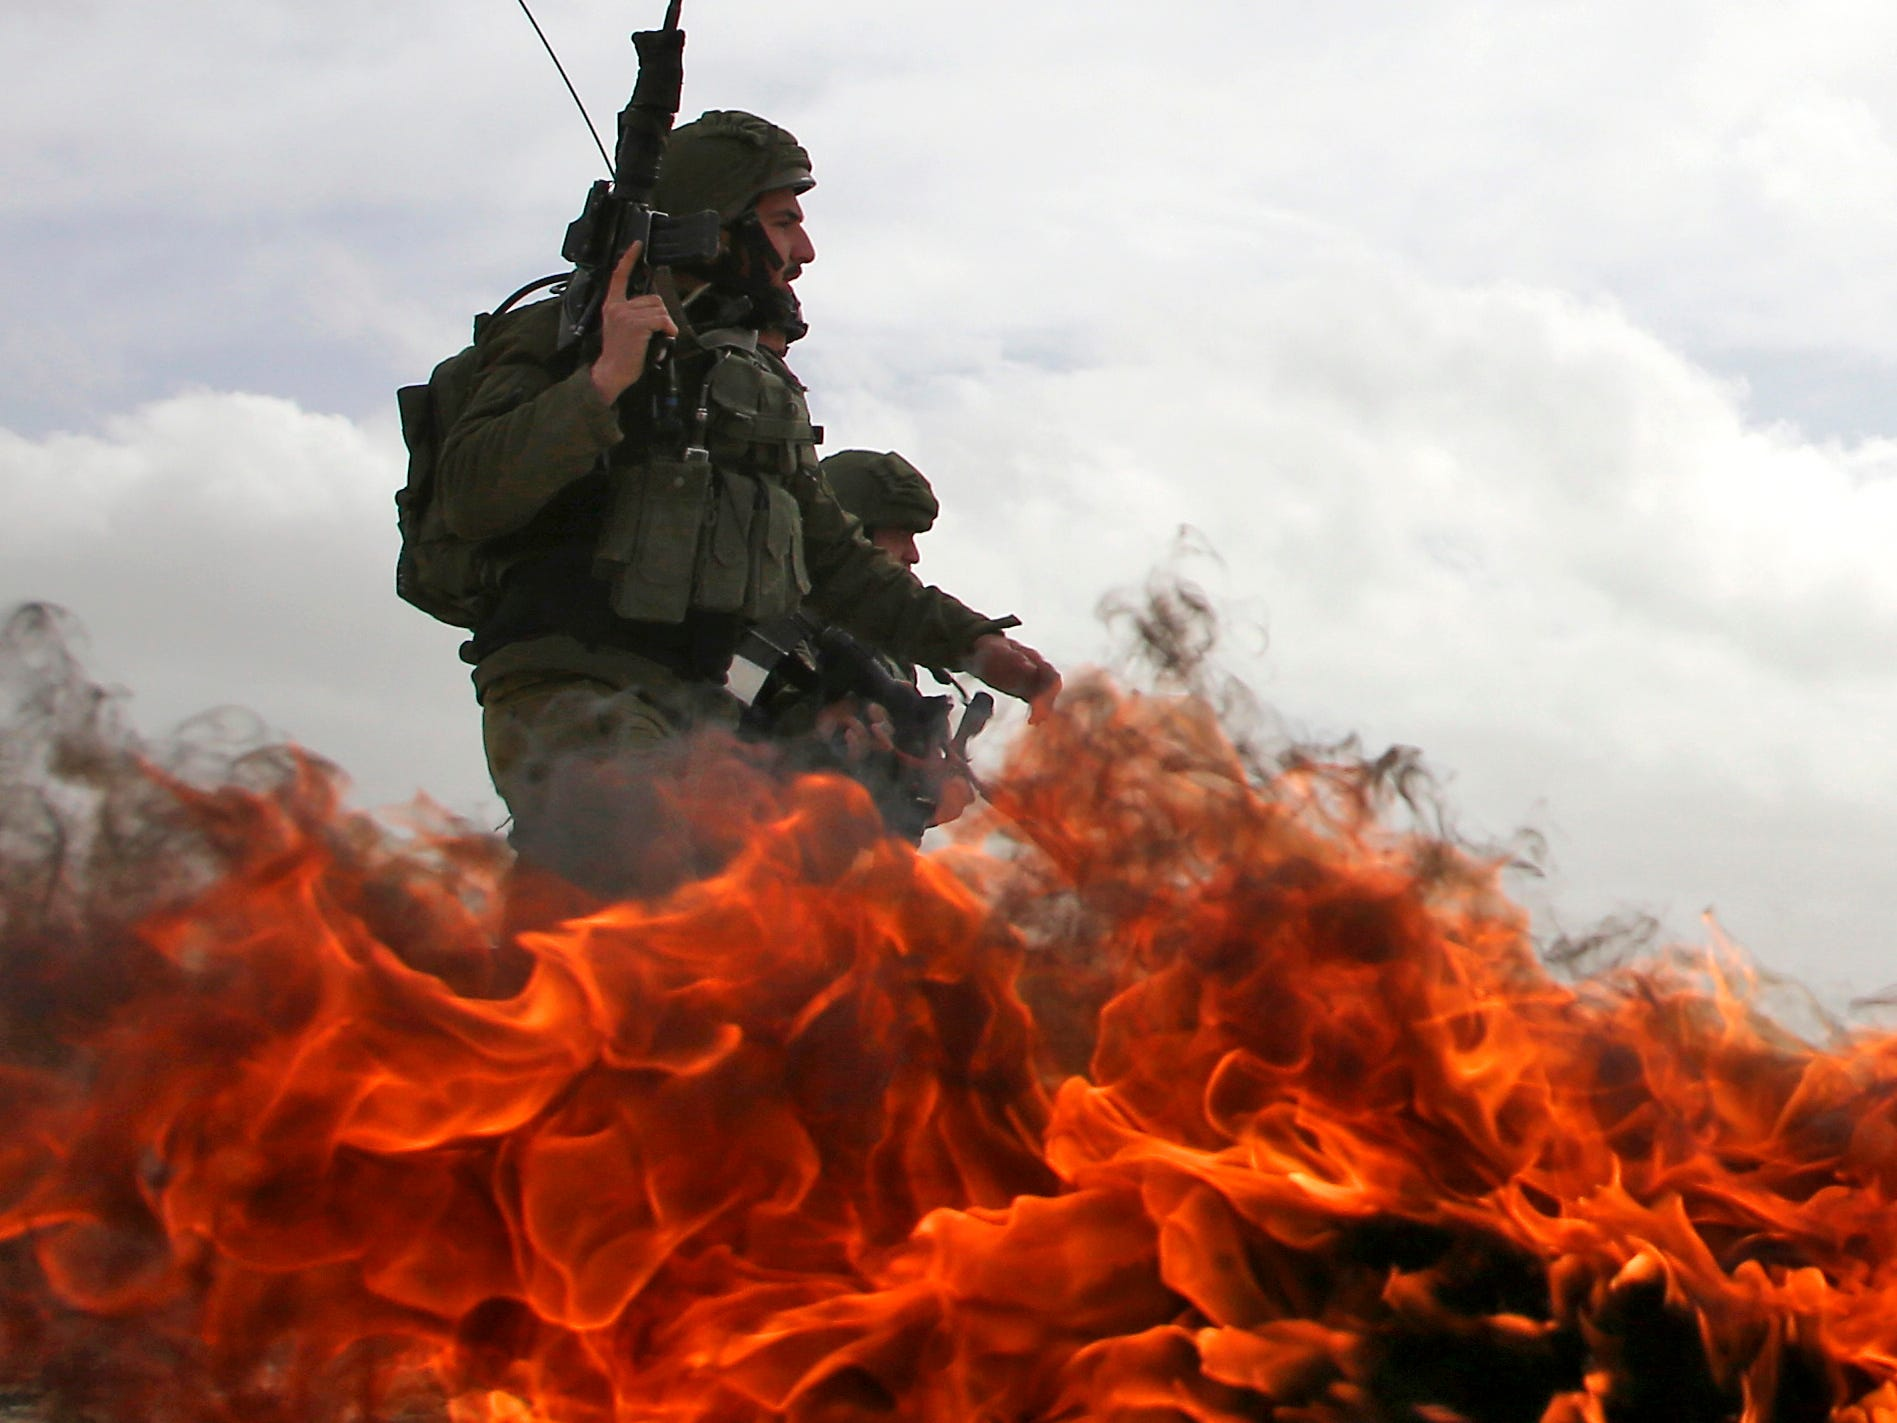 Israeli soldiers walk past burning tires during clashes with Palestinian protestors following a demonstration against Jewish settlements in the West Bank village of Urif, south of Nablus, on Feb. 15, 2019.